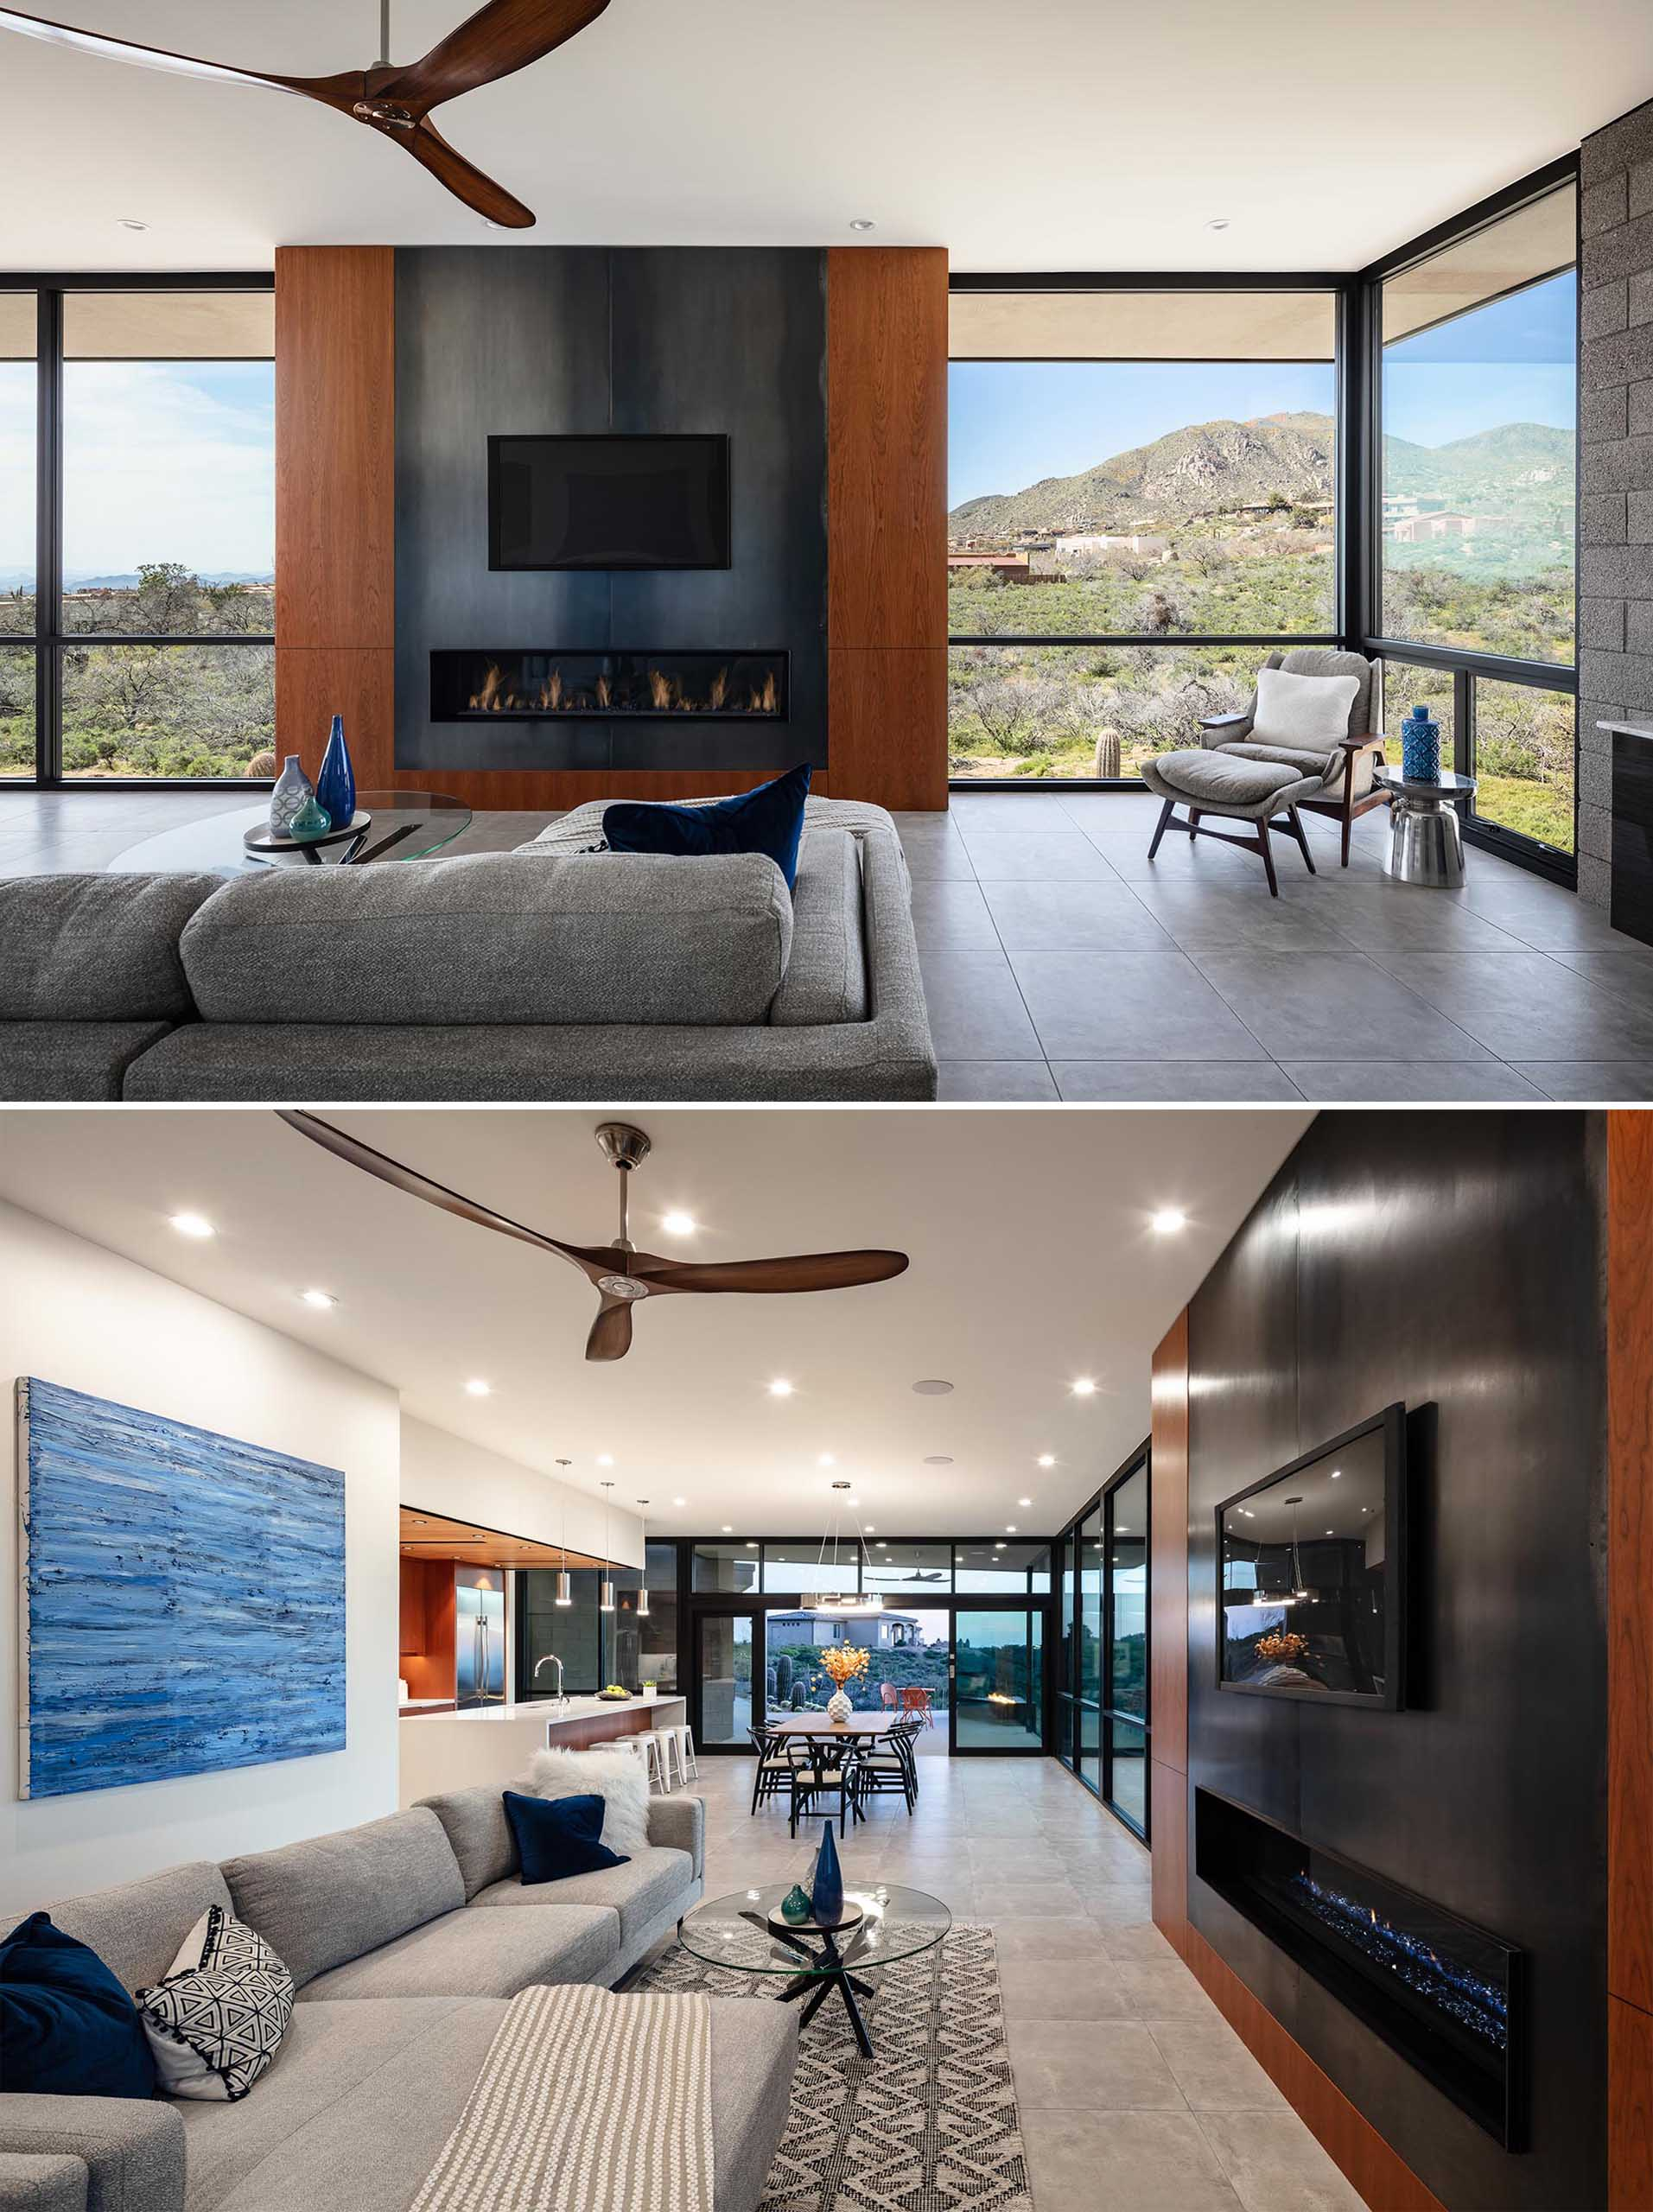 In this modern living room, there's a main fireplace and entertainment wall that showcases cherry veneer custom cabinets and oxidized steel fireplace panels.